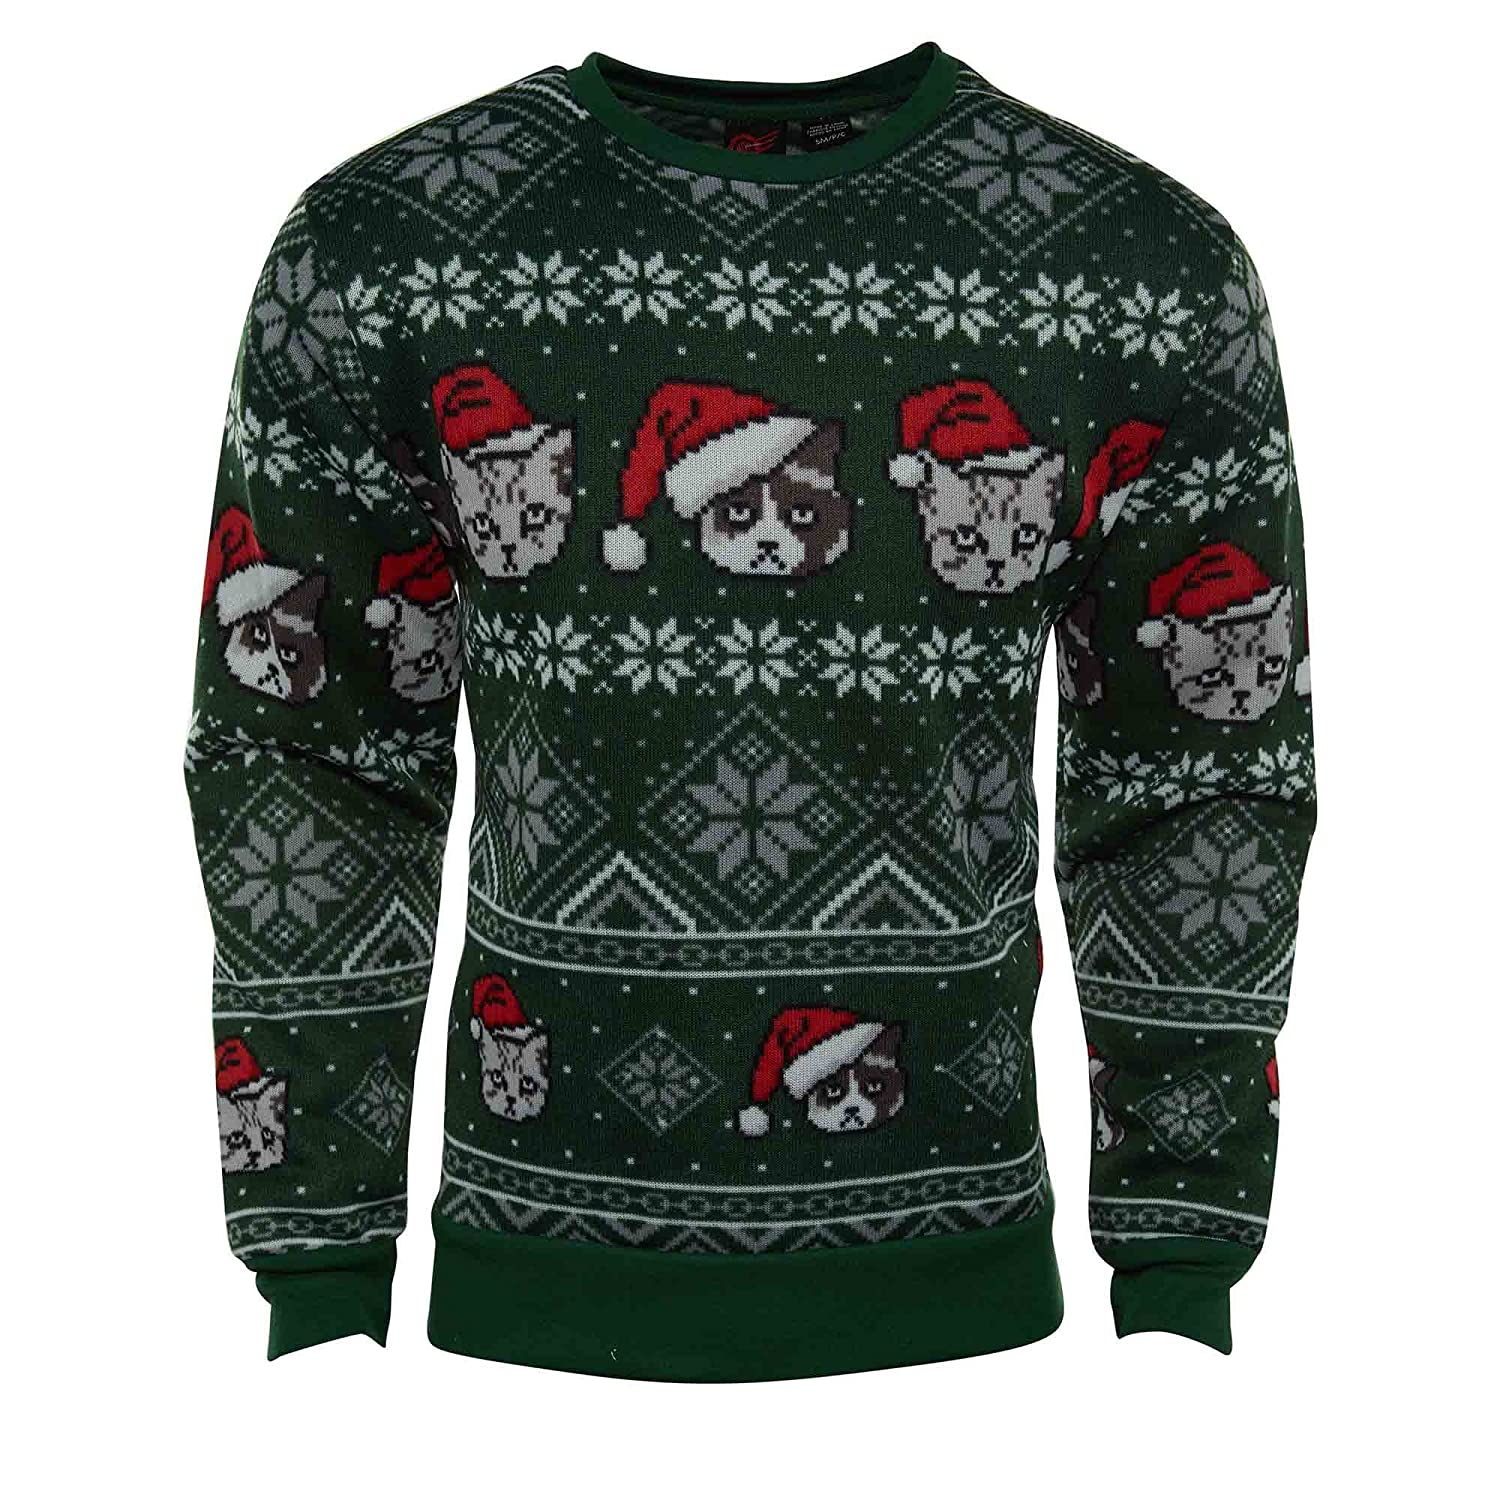 Men's Cat Lovers Holiday Catz Ugly Sweater Christmas Sweatshirt (X-Large) Mad Engine